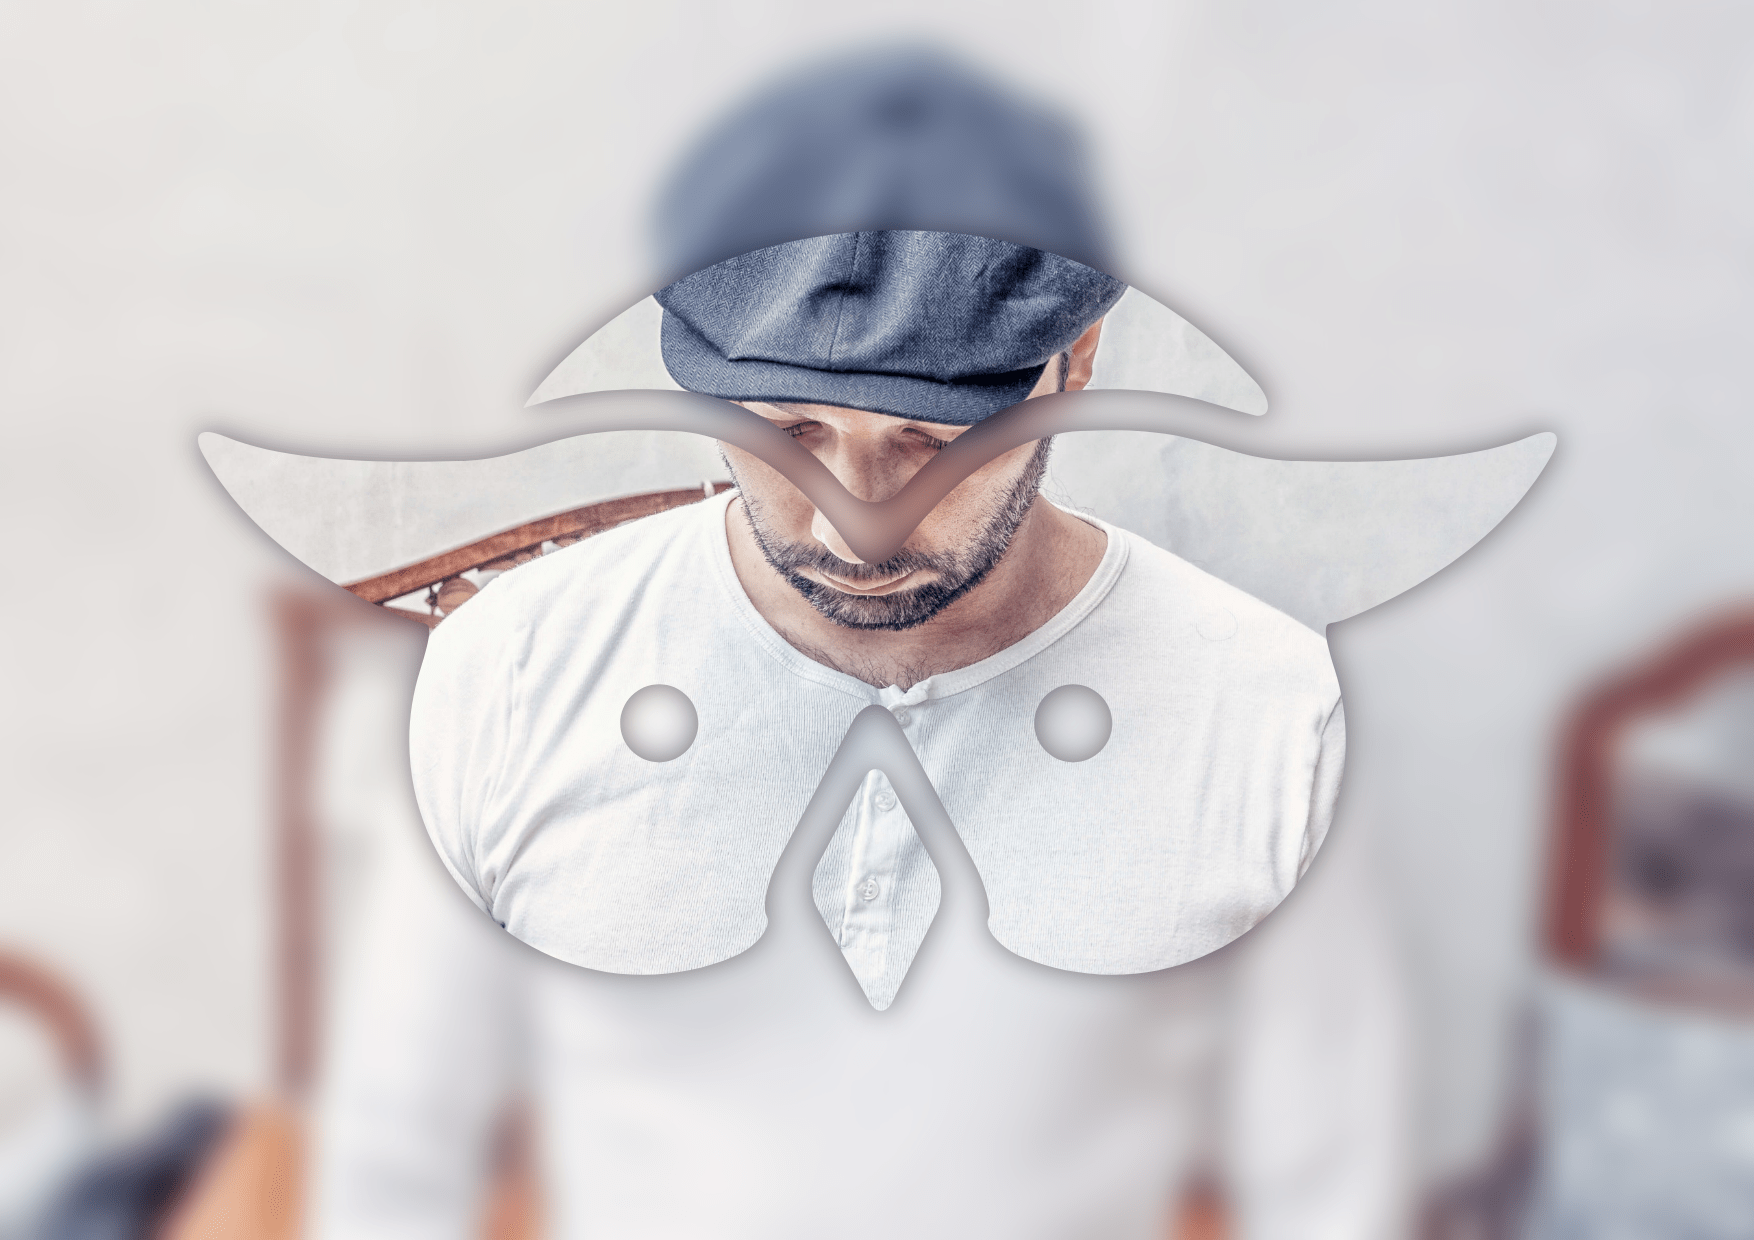 Person,                Clothing,                Glasses,                Cap,                Cook,                Image,                Avatar,                White,                 Free Image